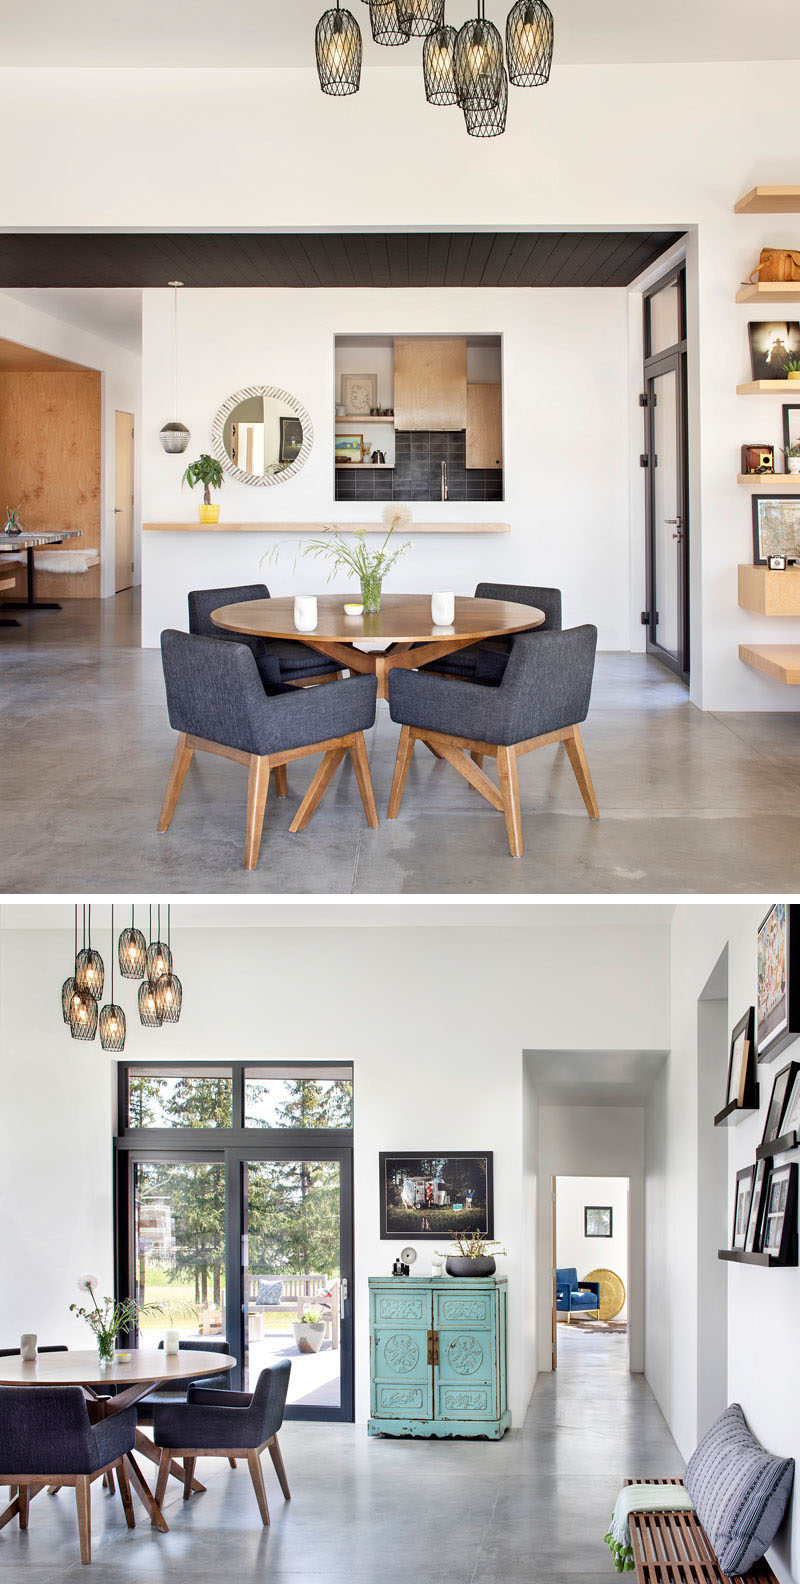 This open plan dining area has a round table that sits below a collection of delicate pendant lights, while white walls and concrete floors, with radiant in-floor heating, are featured throughout the home. #DiningRoom #ConcreteFloors #ModernInterior